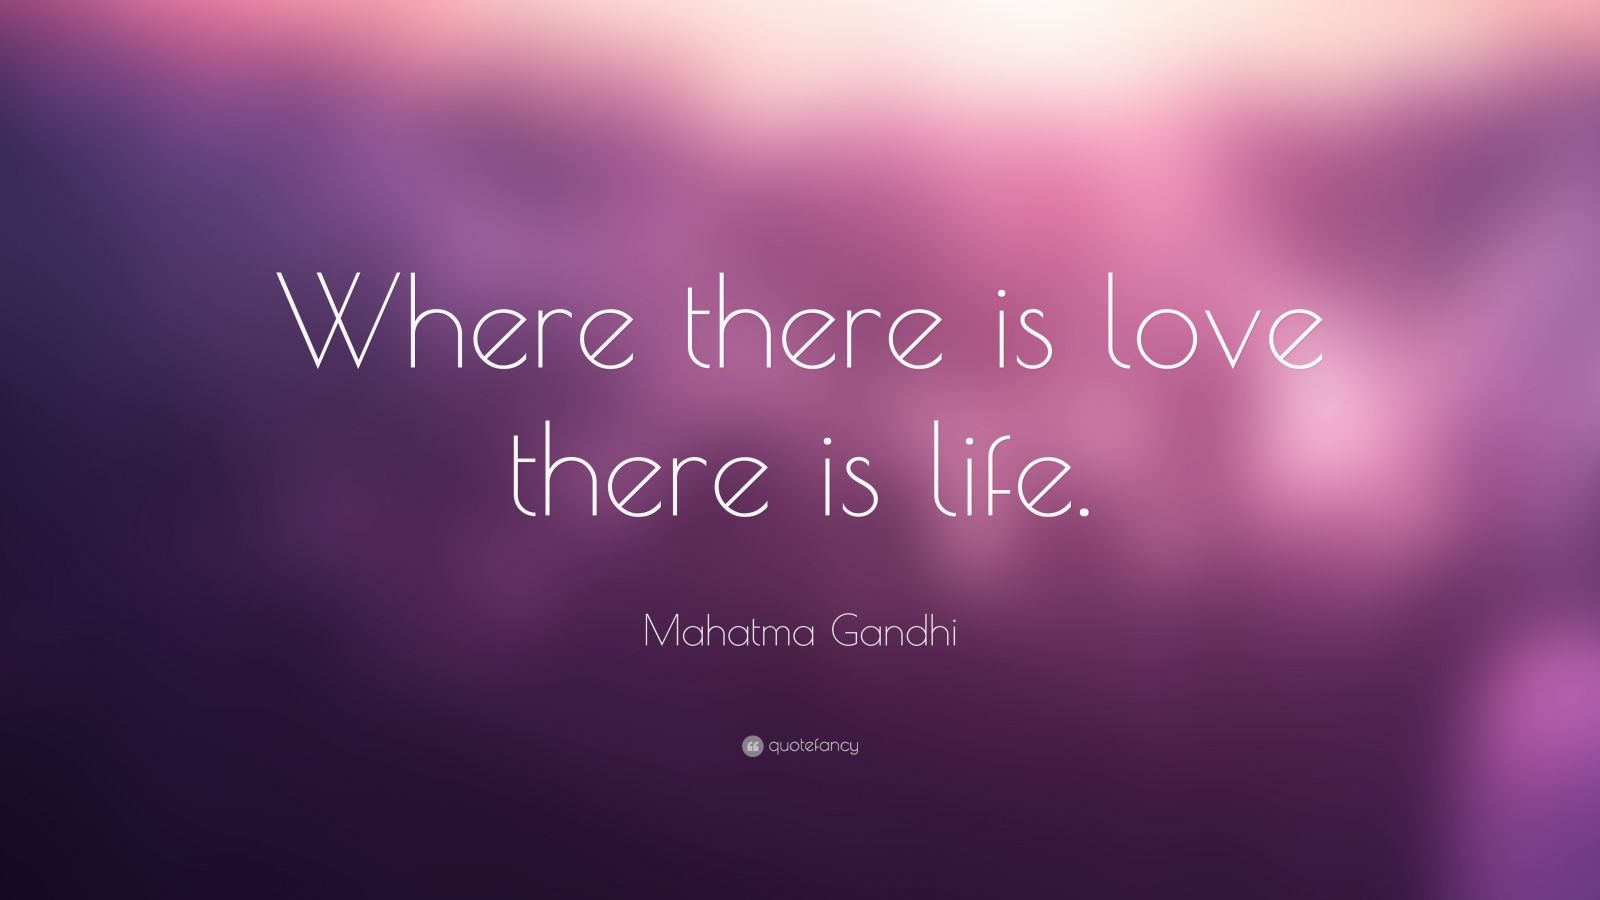 Mahatma Gandhi Quotes On Love Alluring Mahatma Gandhi Quotes 100 Wallpapers  Quotefancy